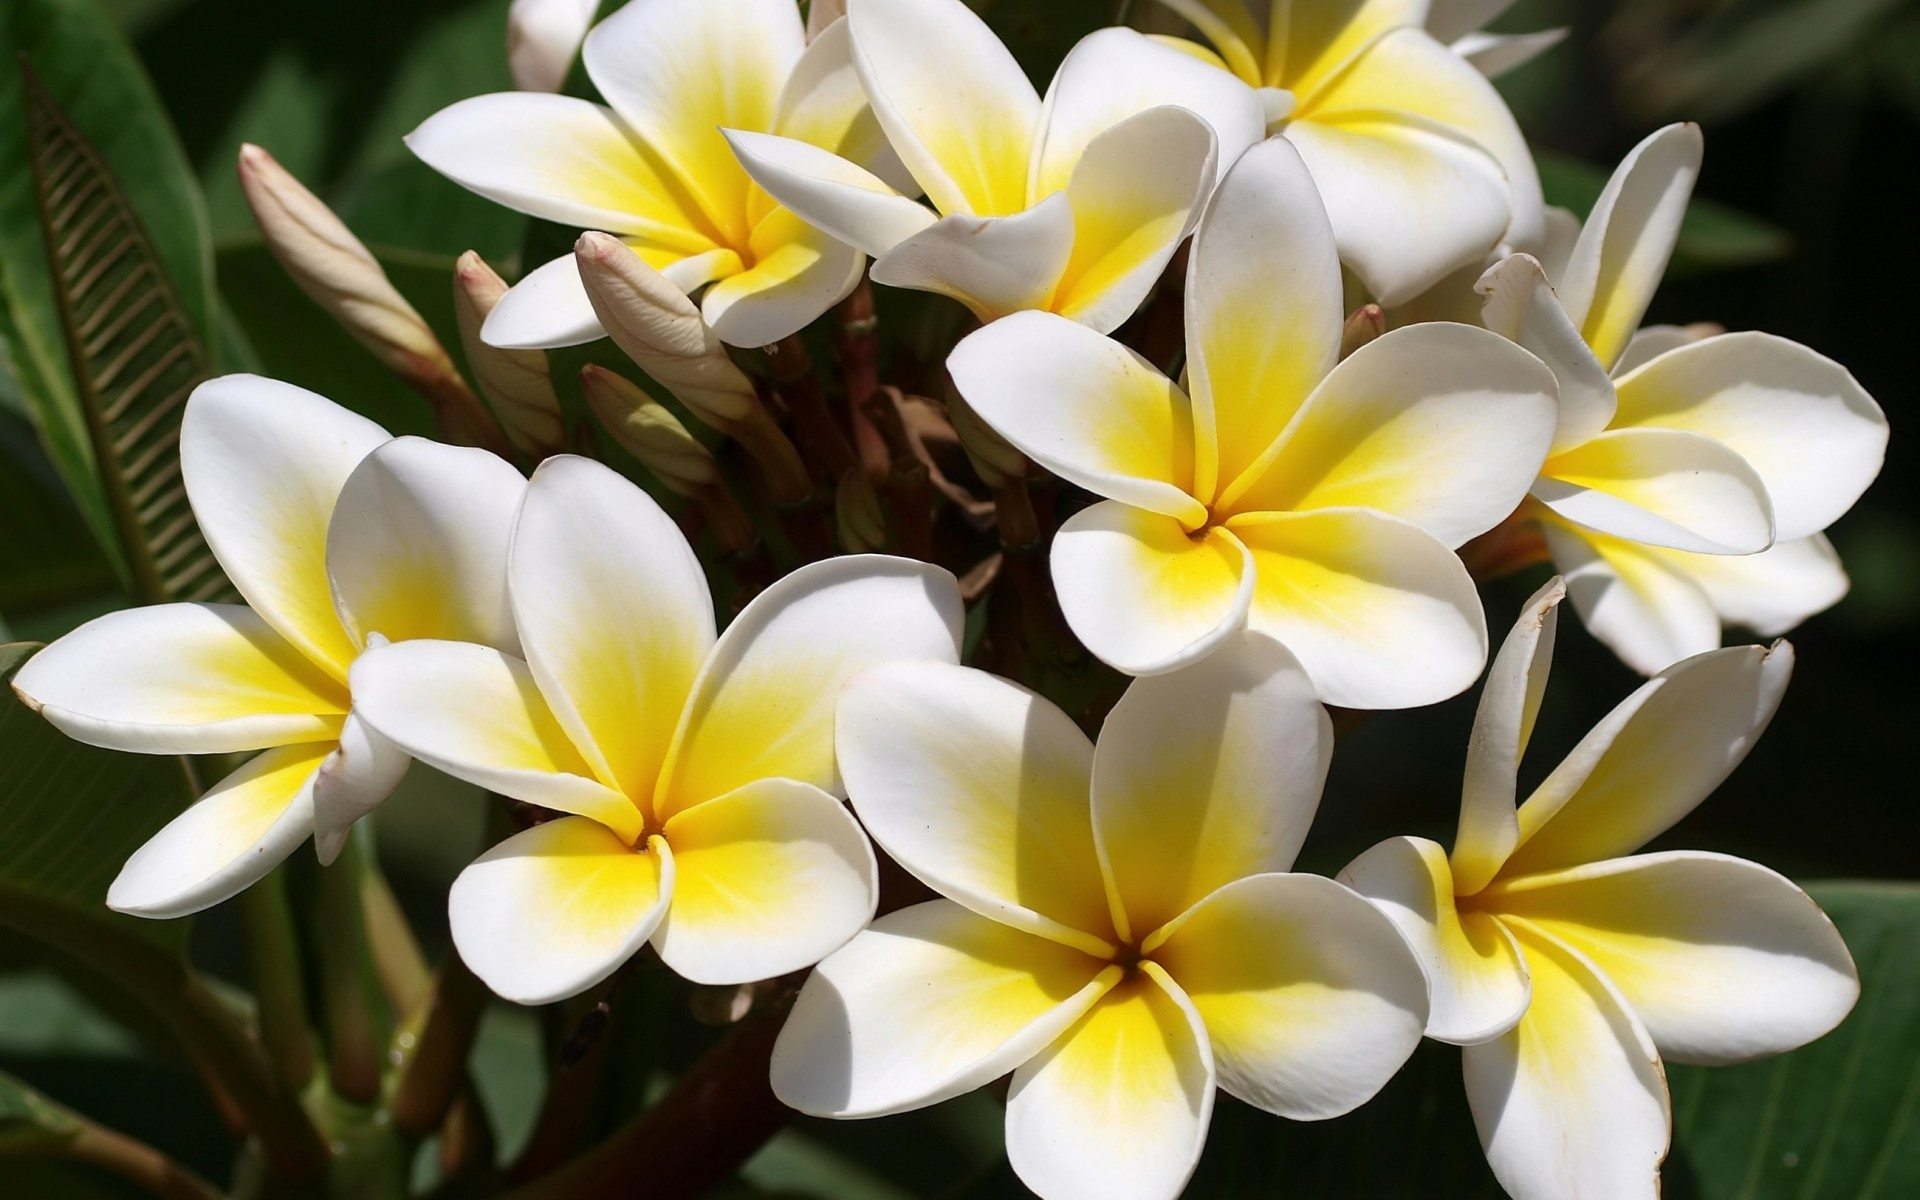 Flowers White Yellow Flowers wallpapers (Desktop, Phone, Tablet ...